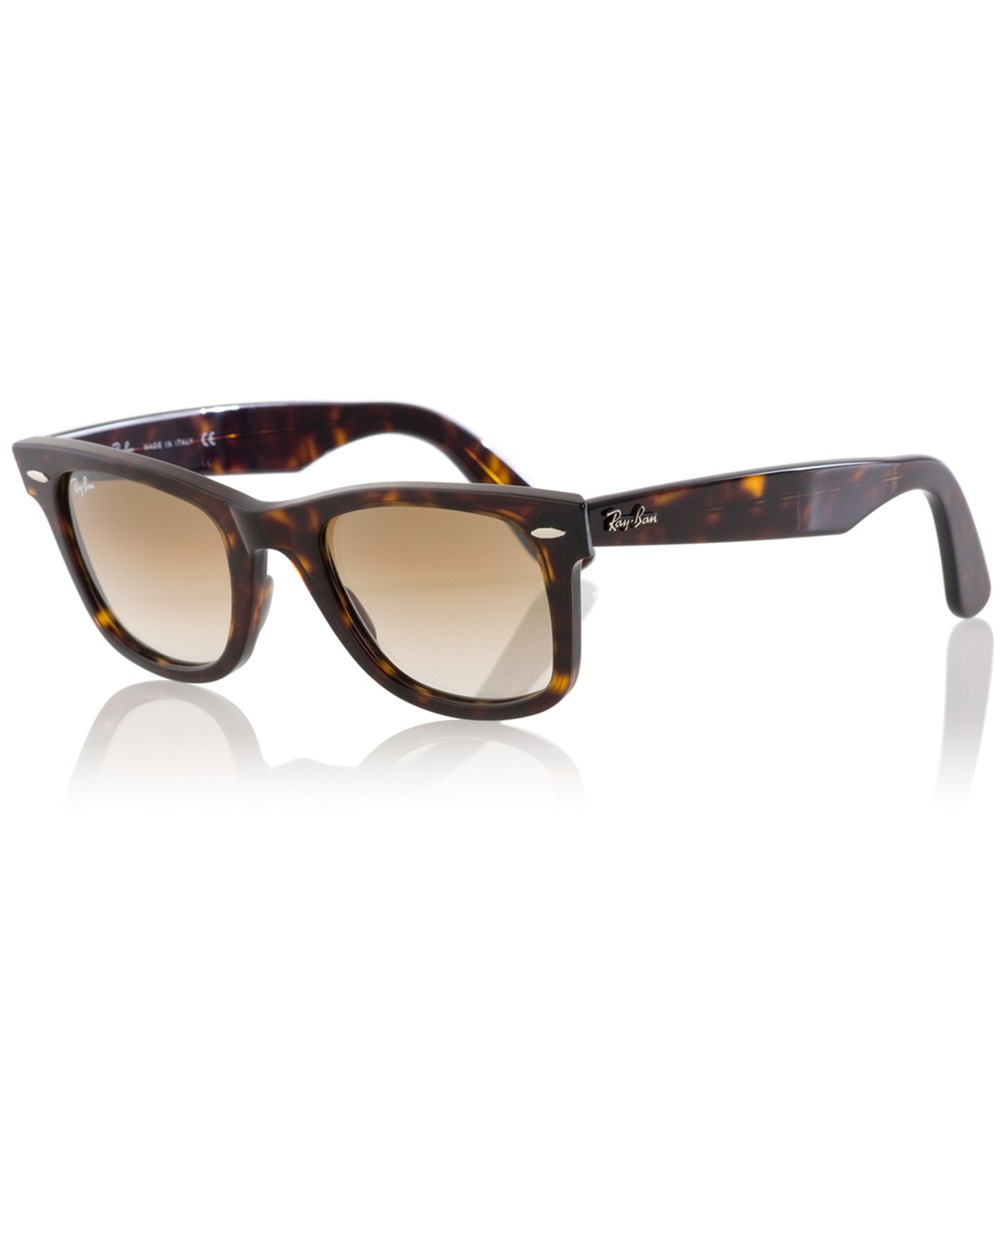 67e4205a88 ... promo code lyst ray ban wayfarer sunglasses in brown for men 587c6 37c7a